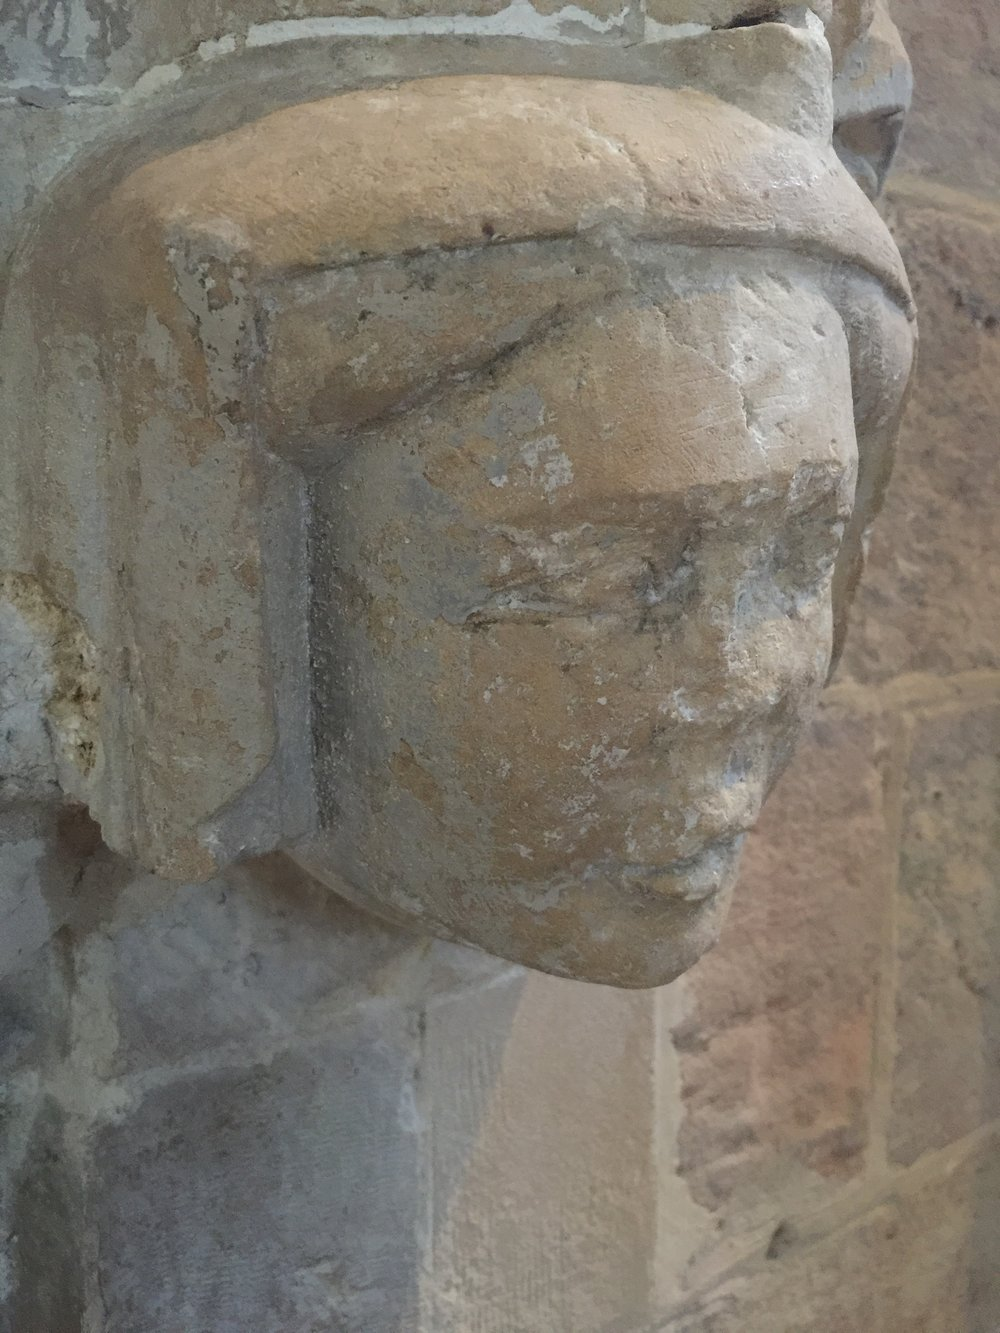 Effigy arch detail - right [side view]